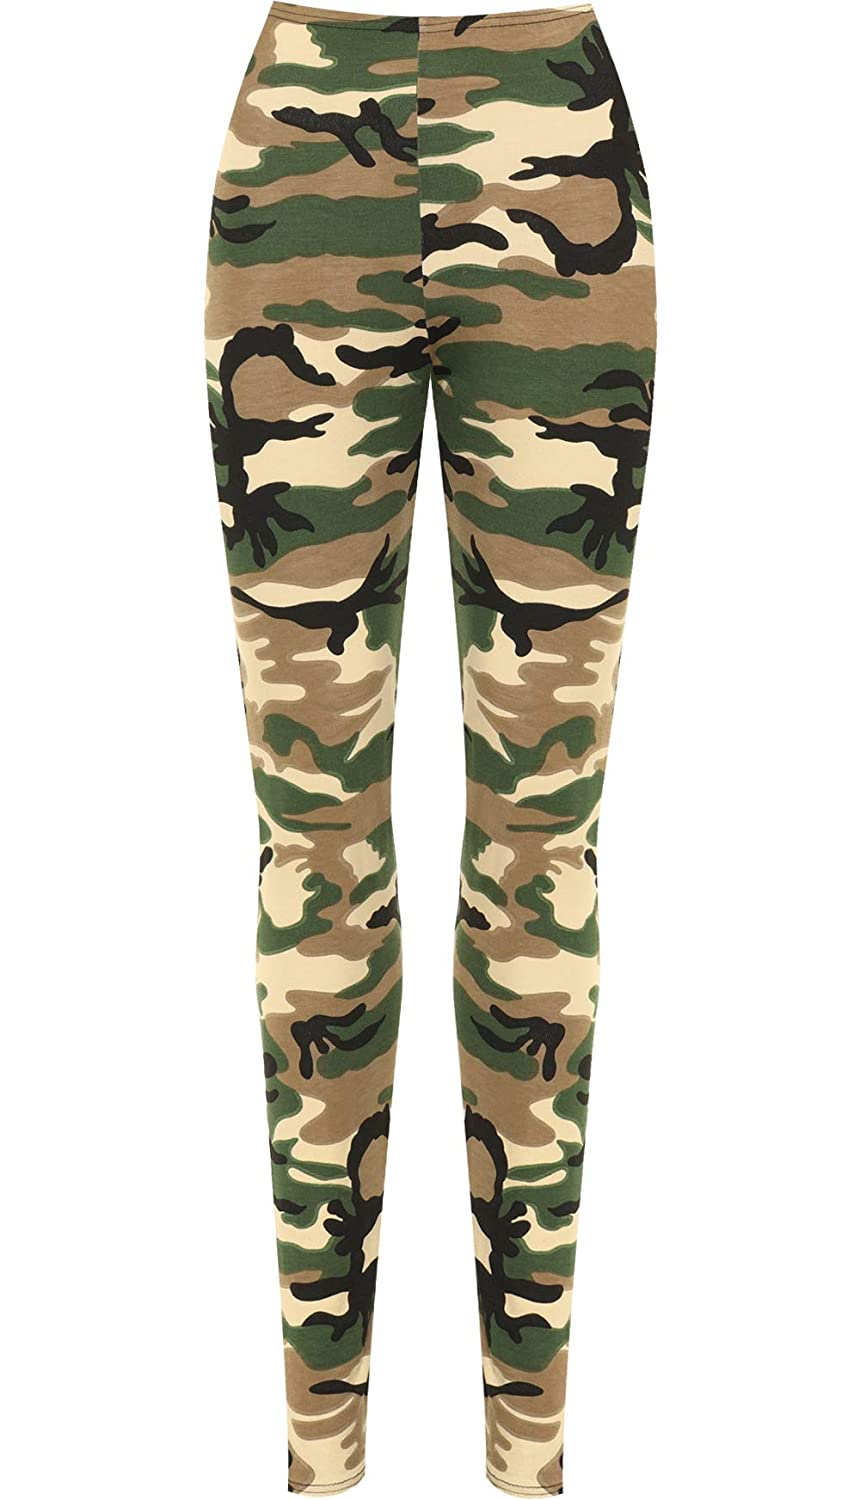 c02a78413a602 WearAll Womens Plus Camouflage Army Print Elacticated Ladies Full Length  Long Leggings 14-22: Amazon.co.uk: Clothing